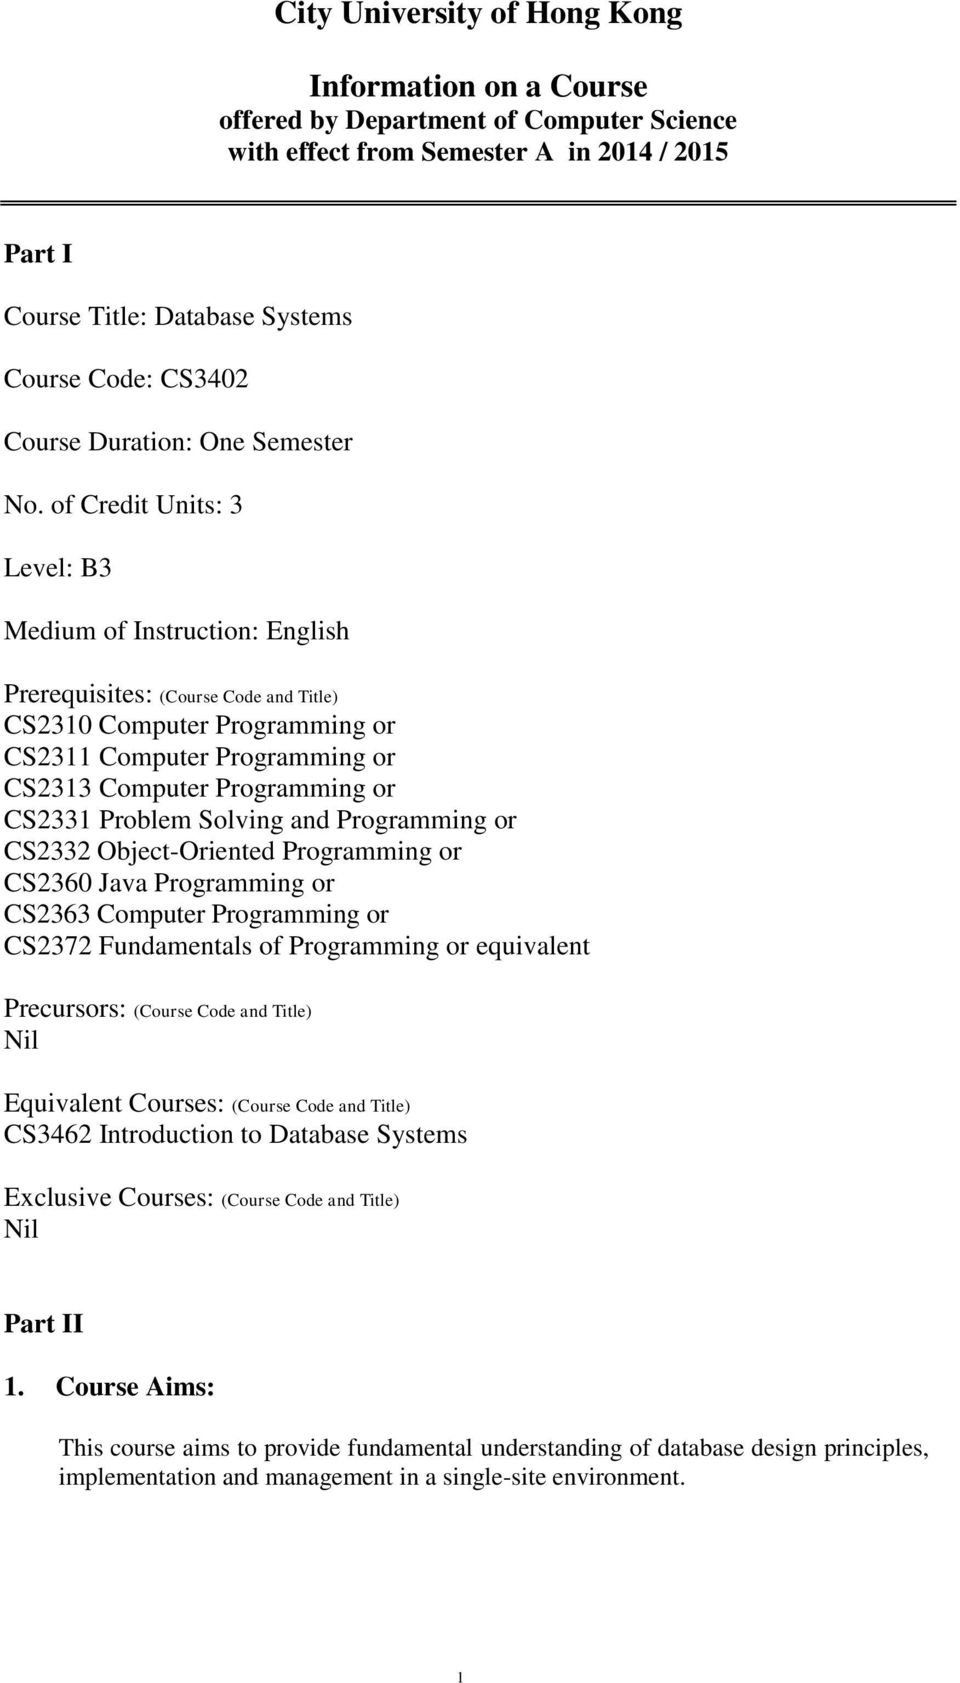 of Credit Units: 3 Level: B3 Medium of Instruction: English Prerequisites: (Course Code and Title) CS2310 Computer Programming or CS2311 Computer Programming or CS2313 Computer Programming or CS2331